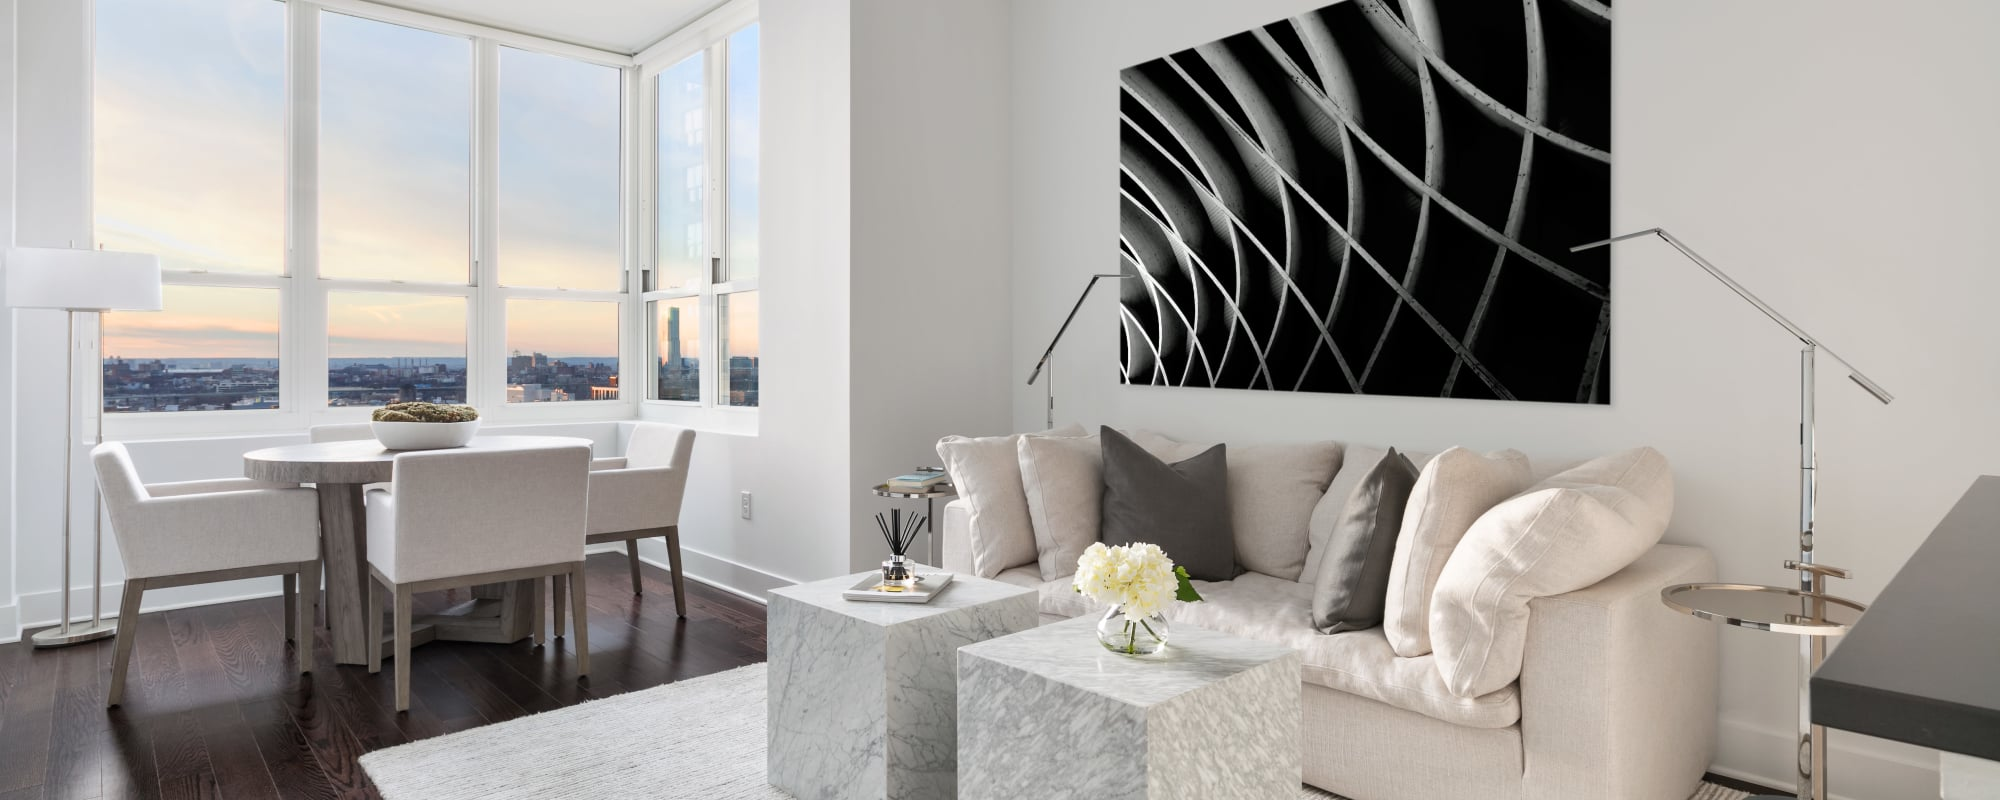 Spacious living room at Trump Bay Street in Jersey City, New Jersey